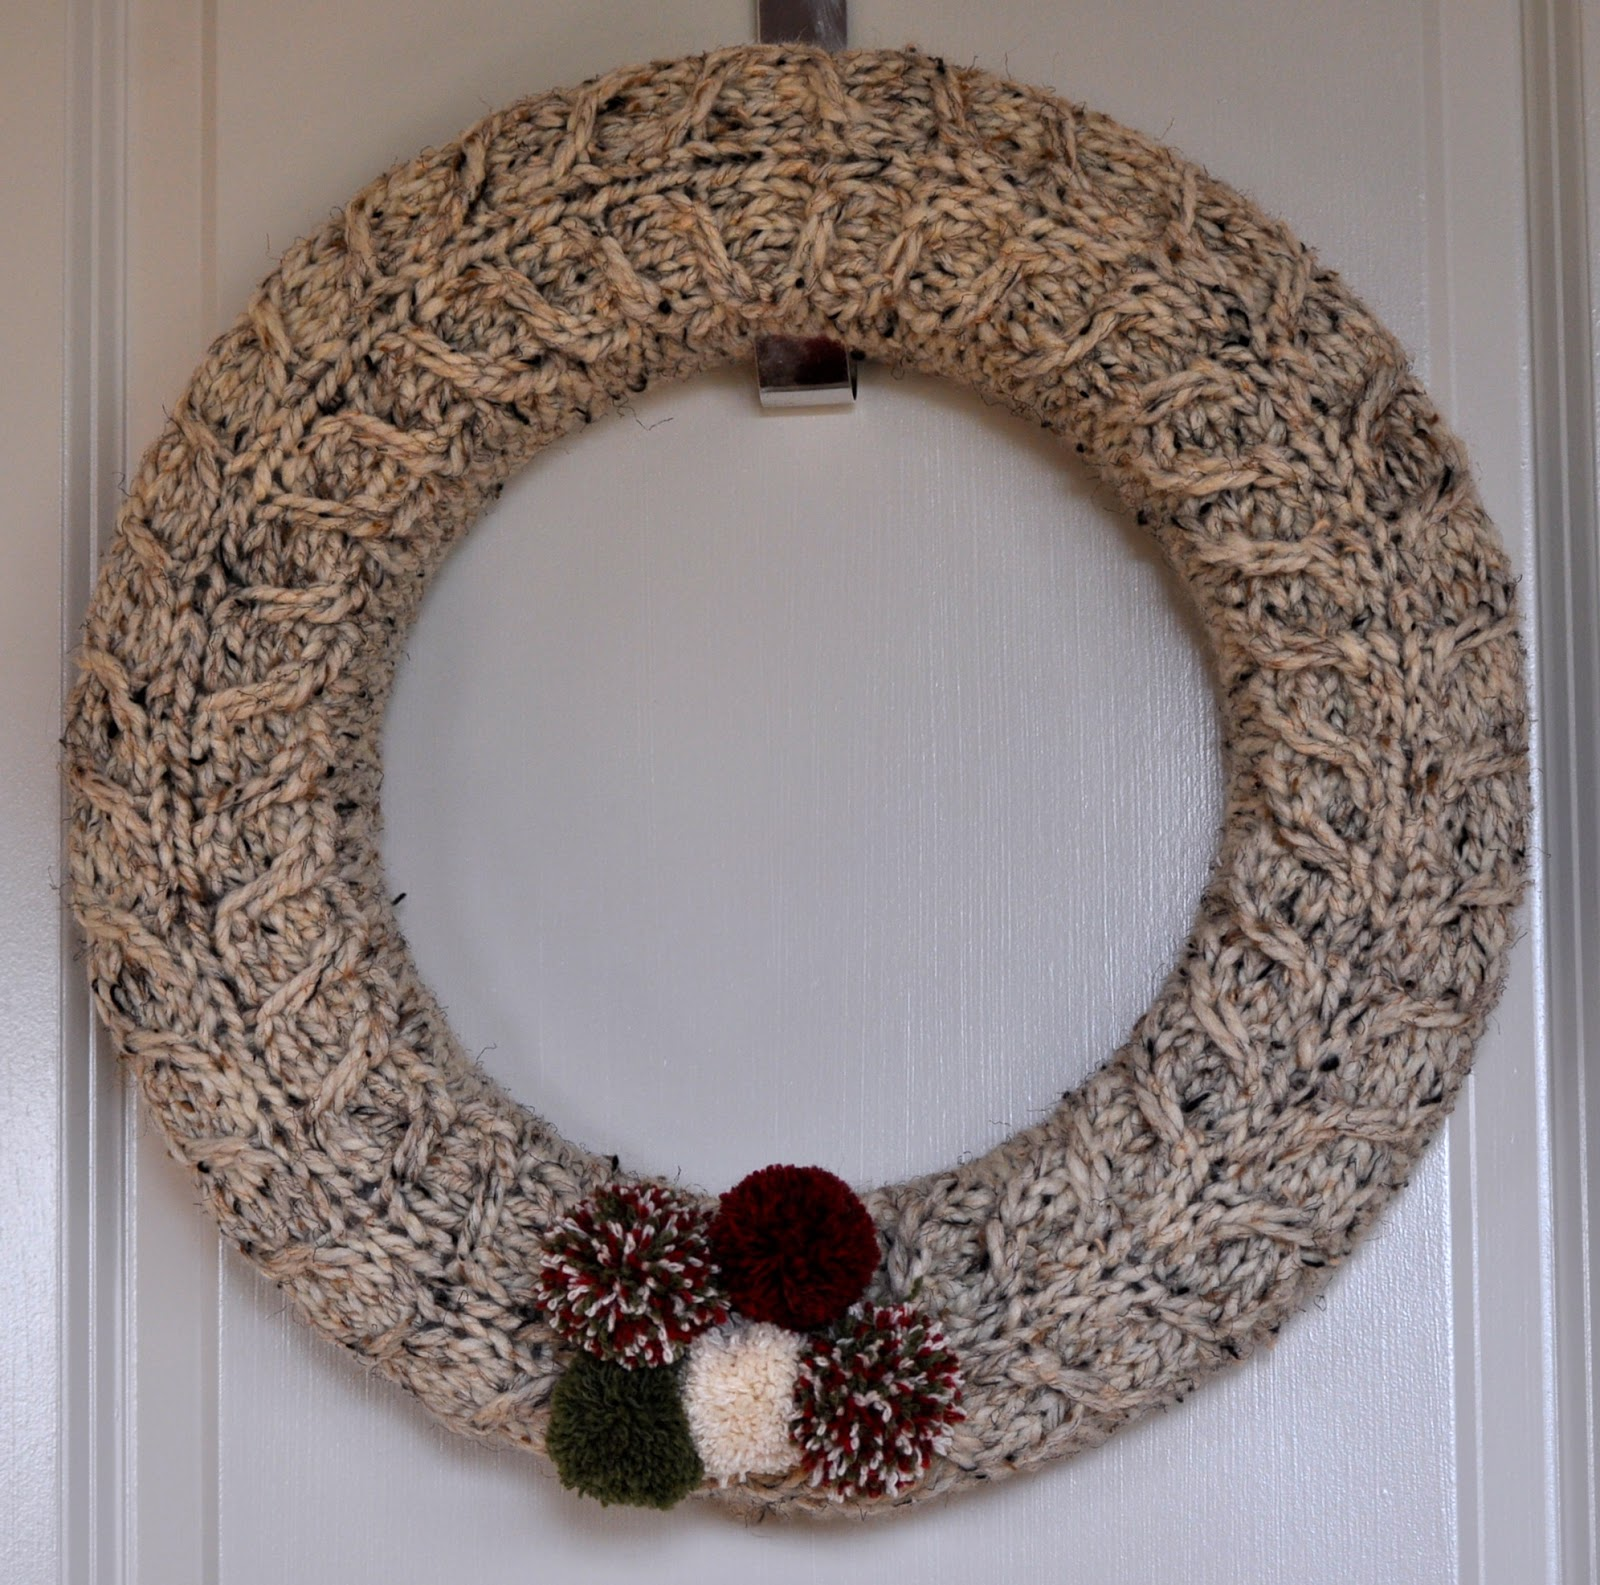 sheep dreams: You need a knitted wreath